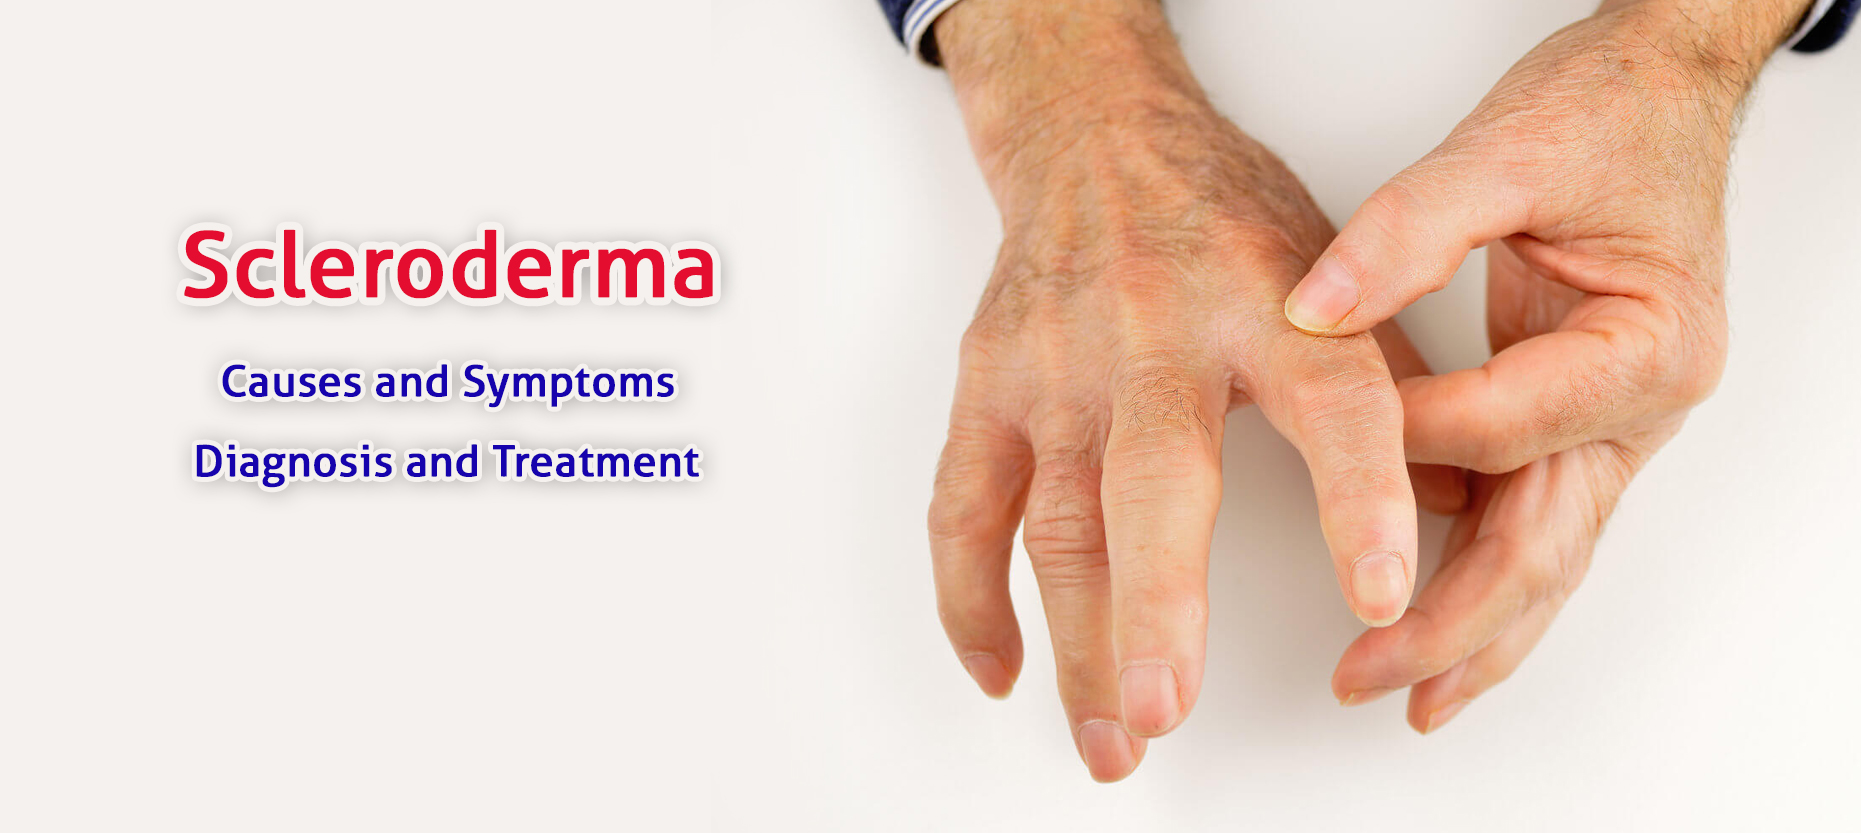 Scleroderma: Causes, Symptoms, Diagnosis and Treatment